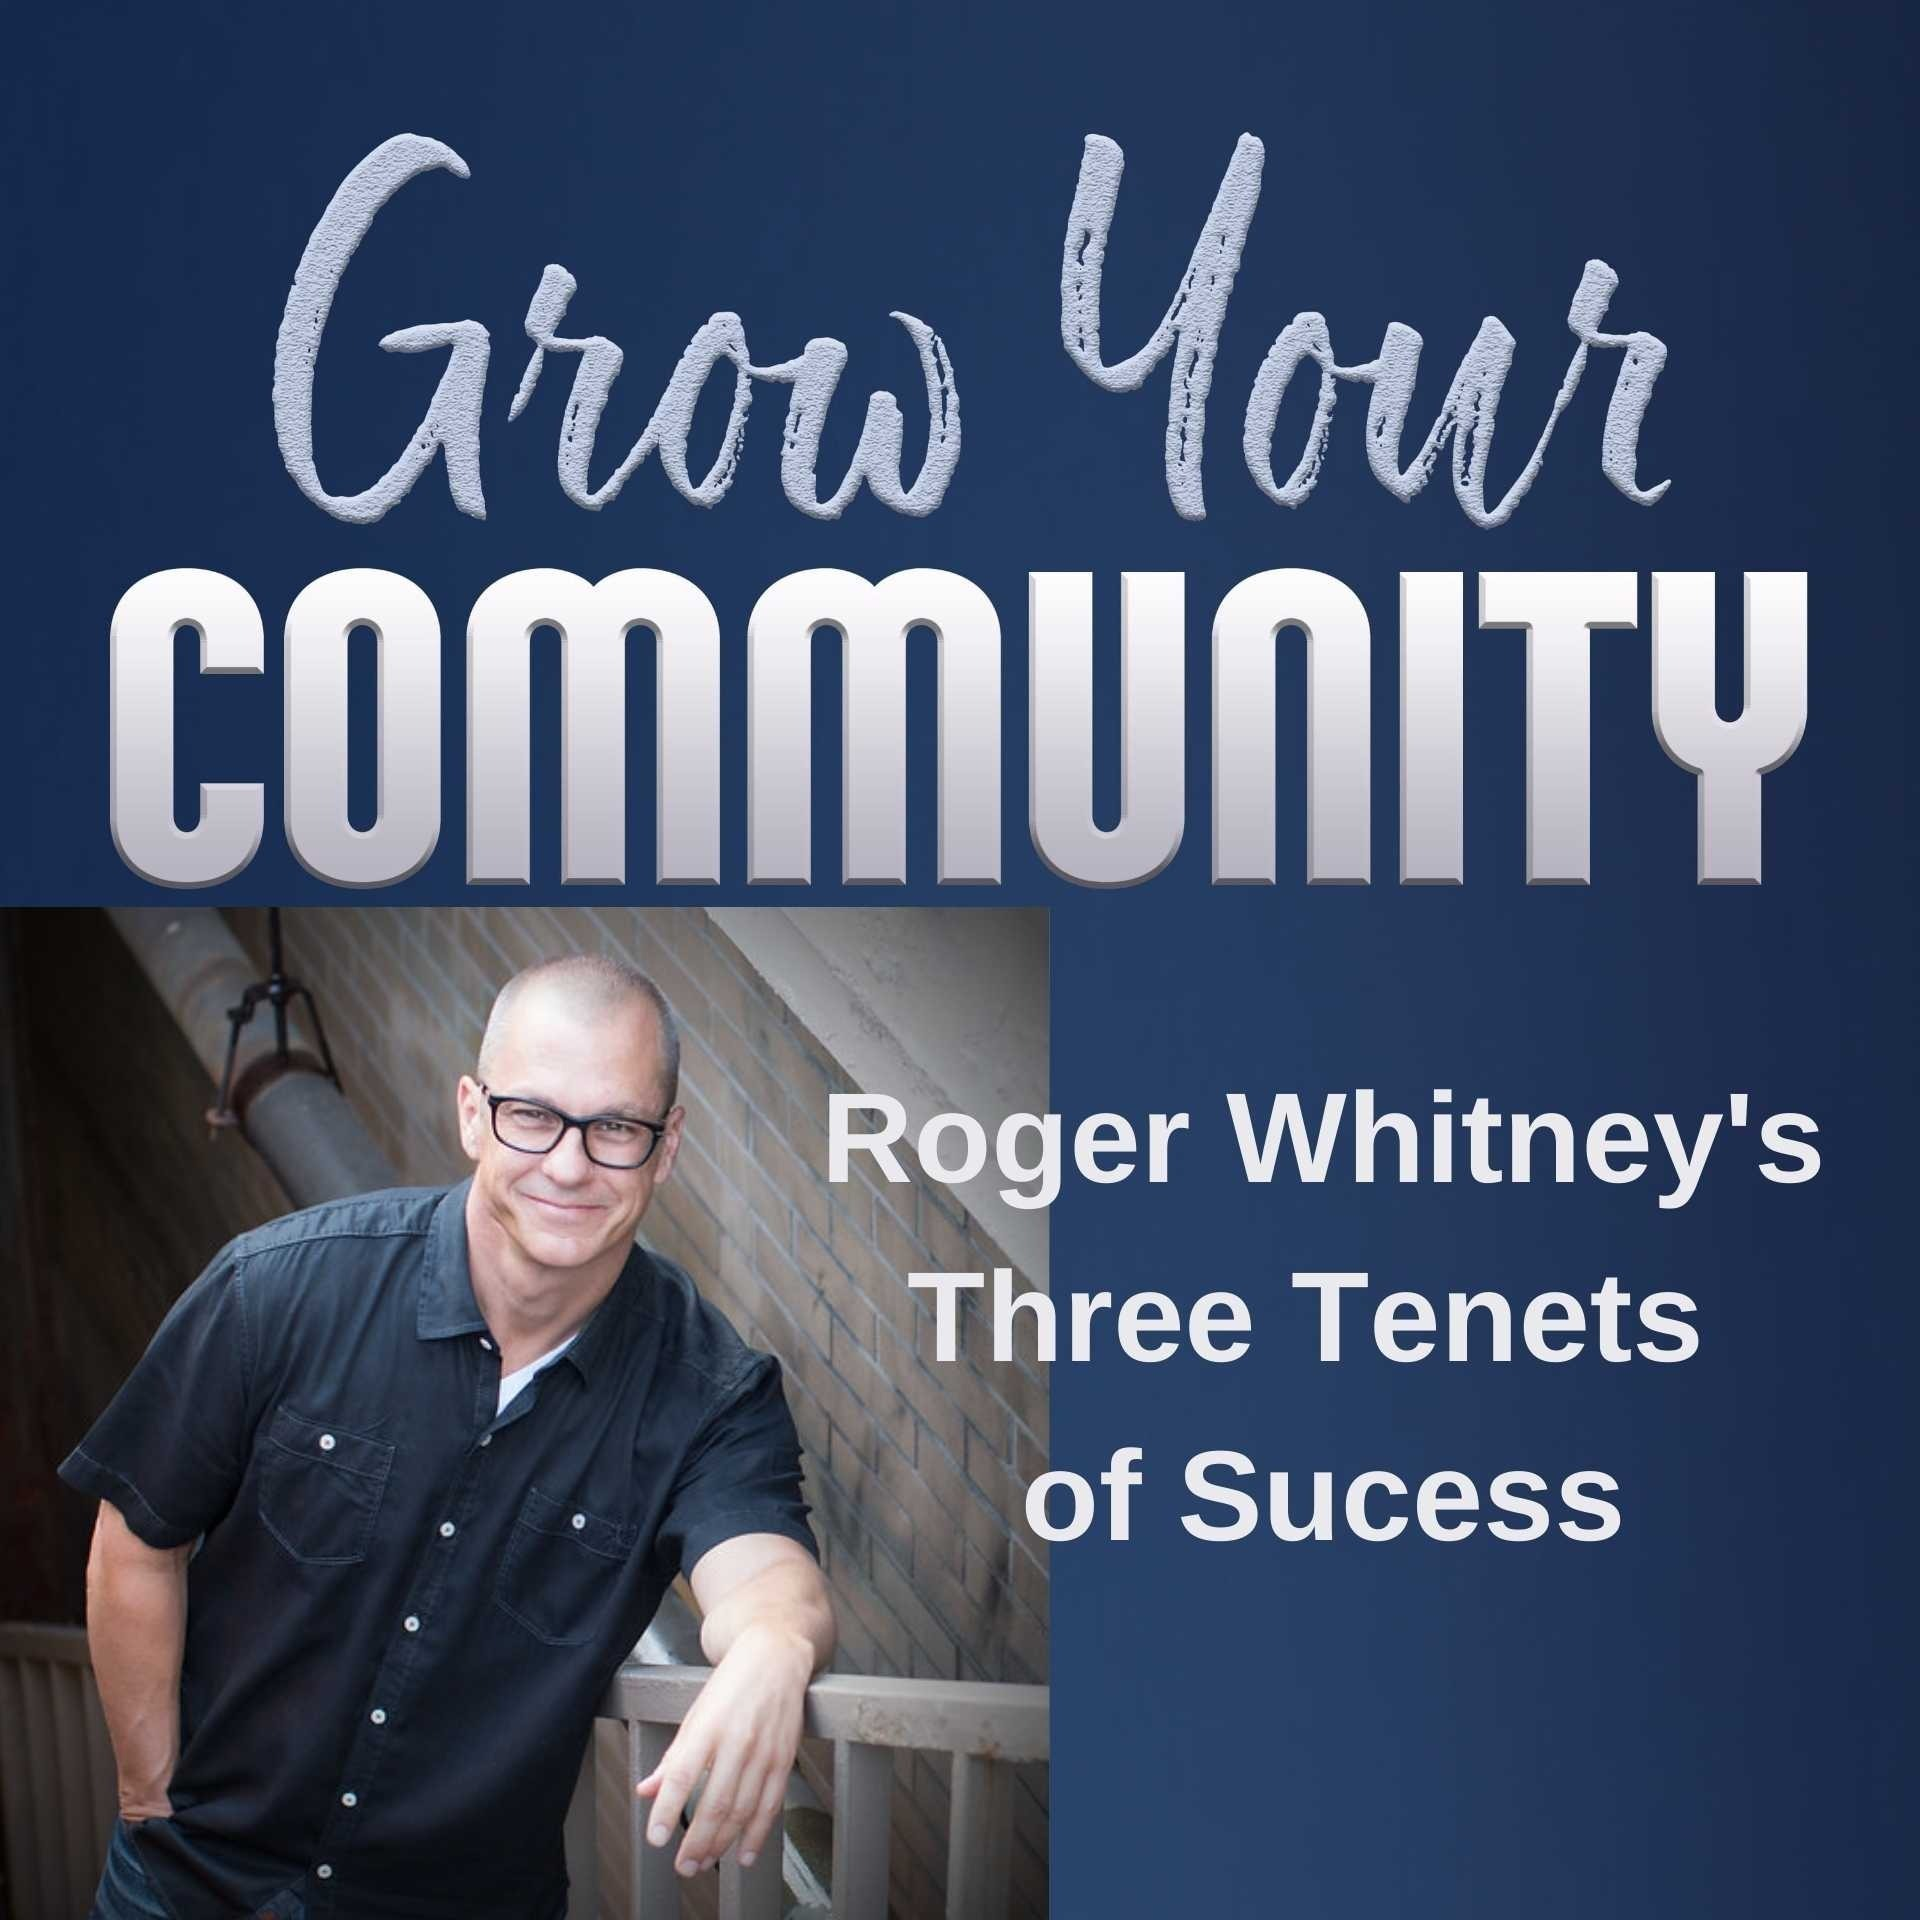 Roger Whitney's Three Tenets of Success